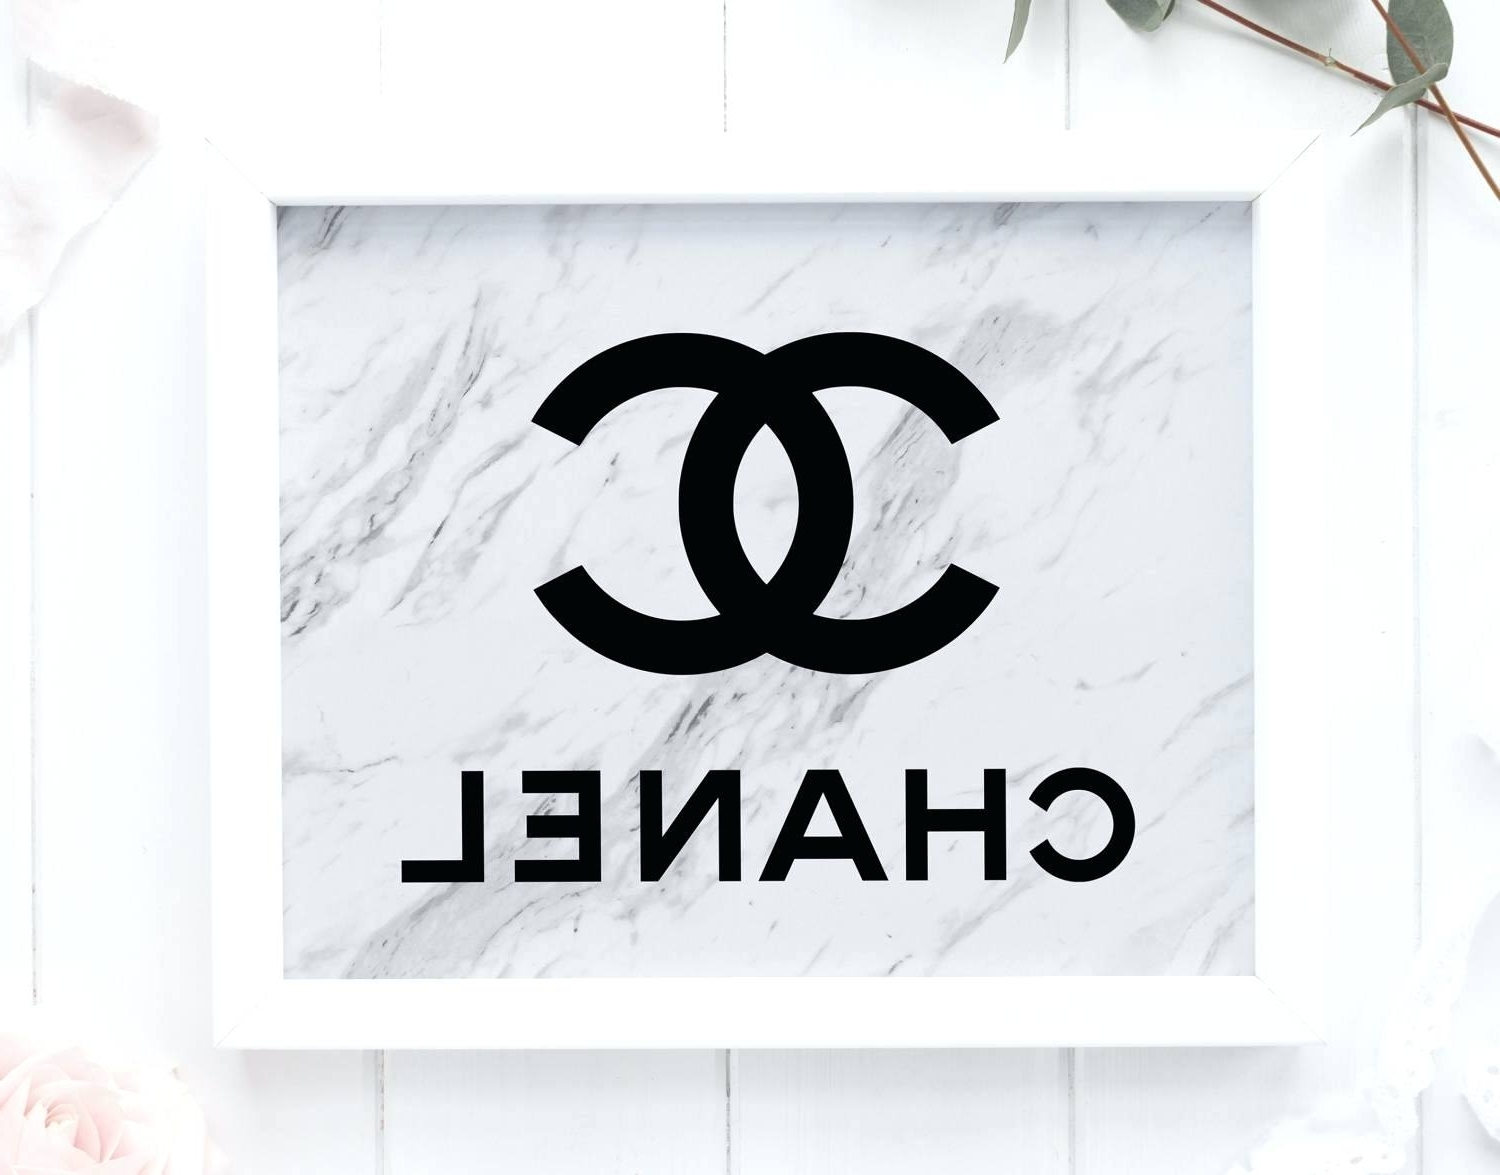 Must see Wallpaper Marble Chanel - chanel-wall-decor-inside-fashionable-chanel-wall-decor-marble-coco-room-art-zoom-decors-handyshop  HD_475474.jpg